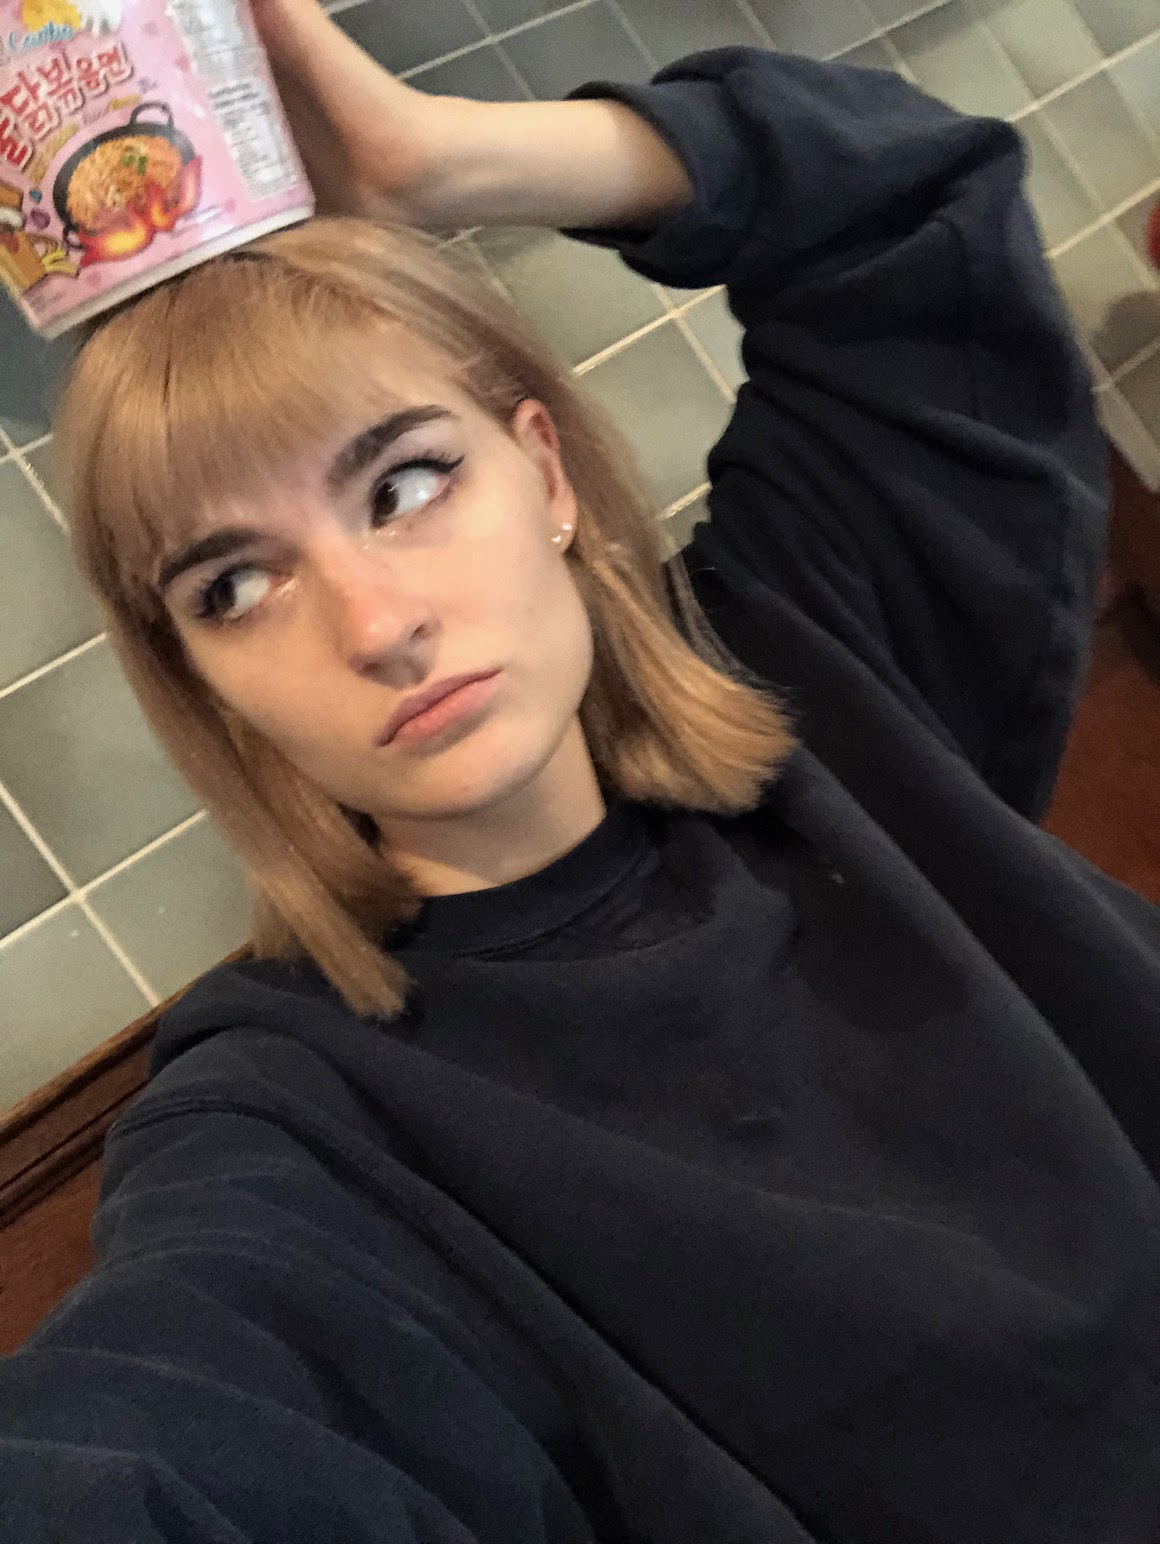 a photo of me after having my hair cut and coloured at Bleach- it was a long sandy blonde bob. I am also holding a cup noodle on top of my head